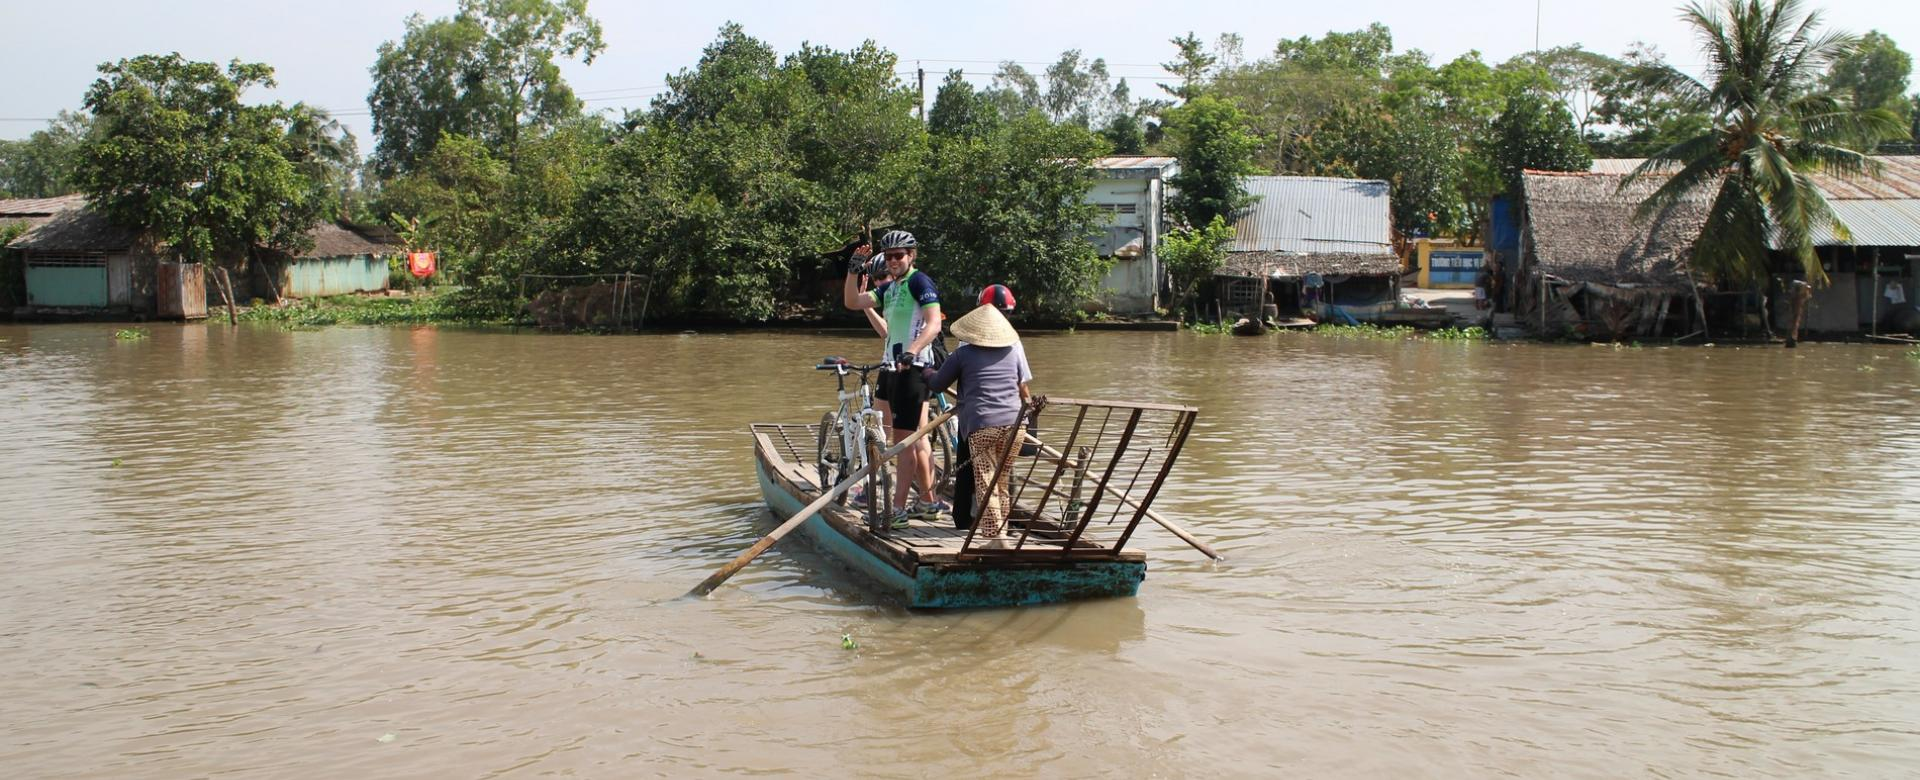 Mekong Delta Biking 4 days/3 nights